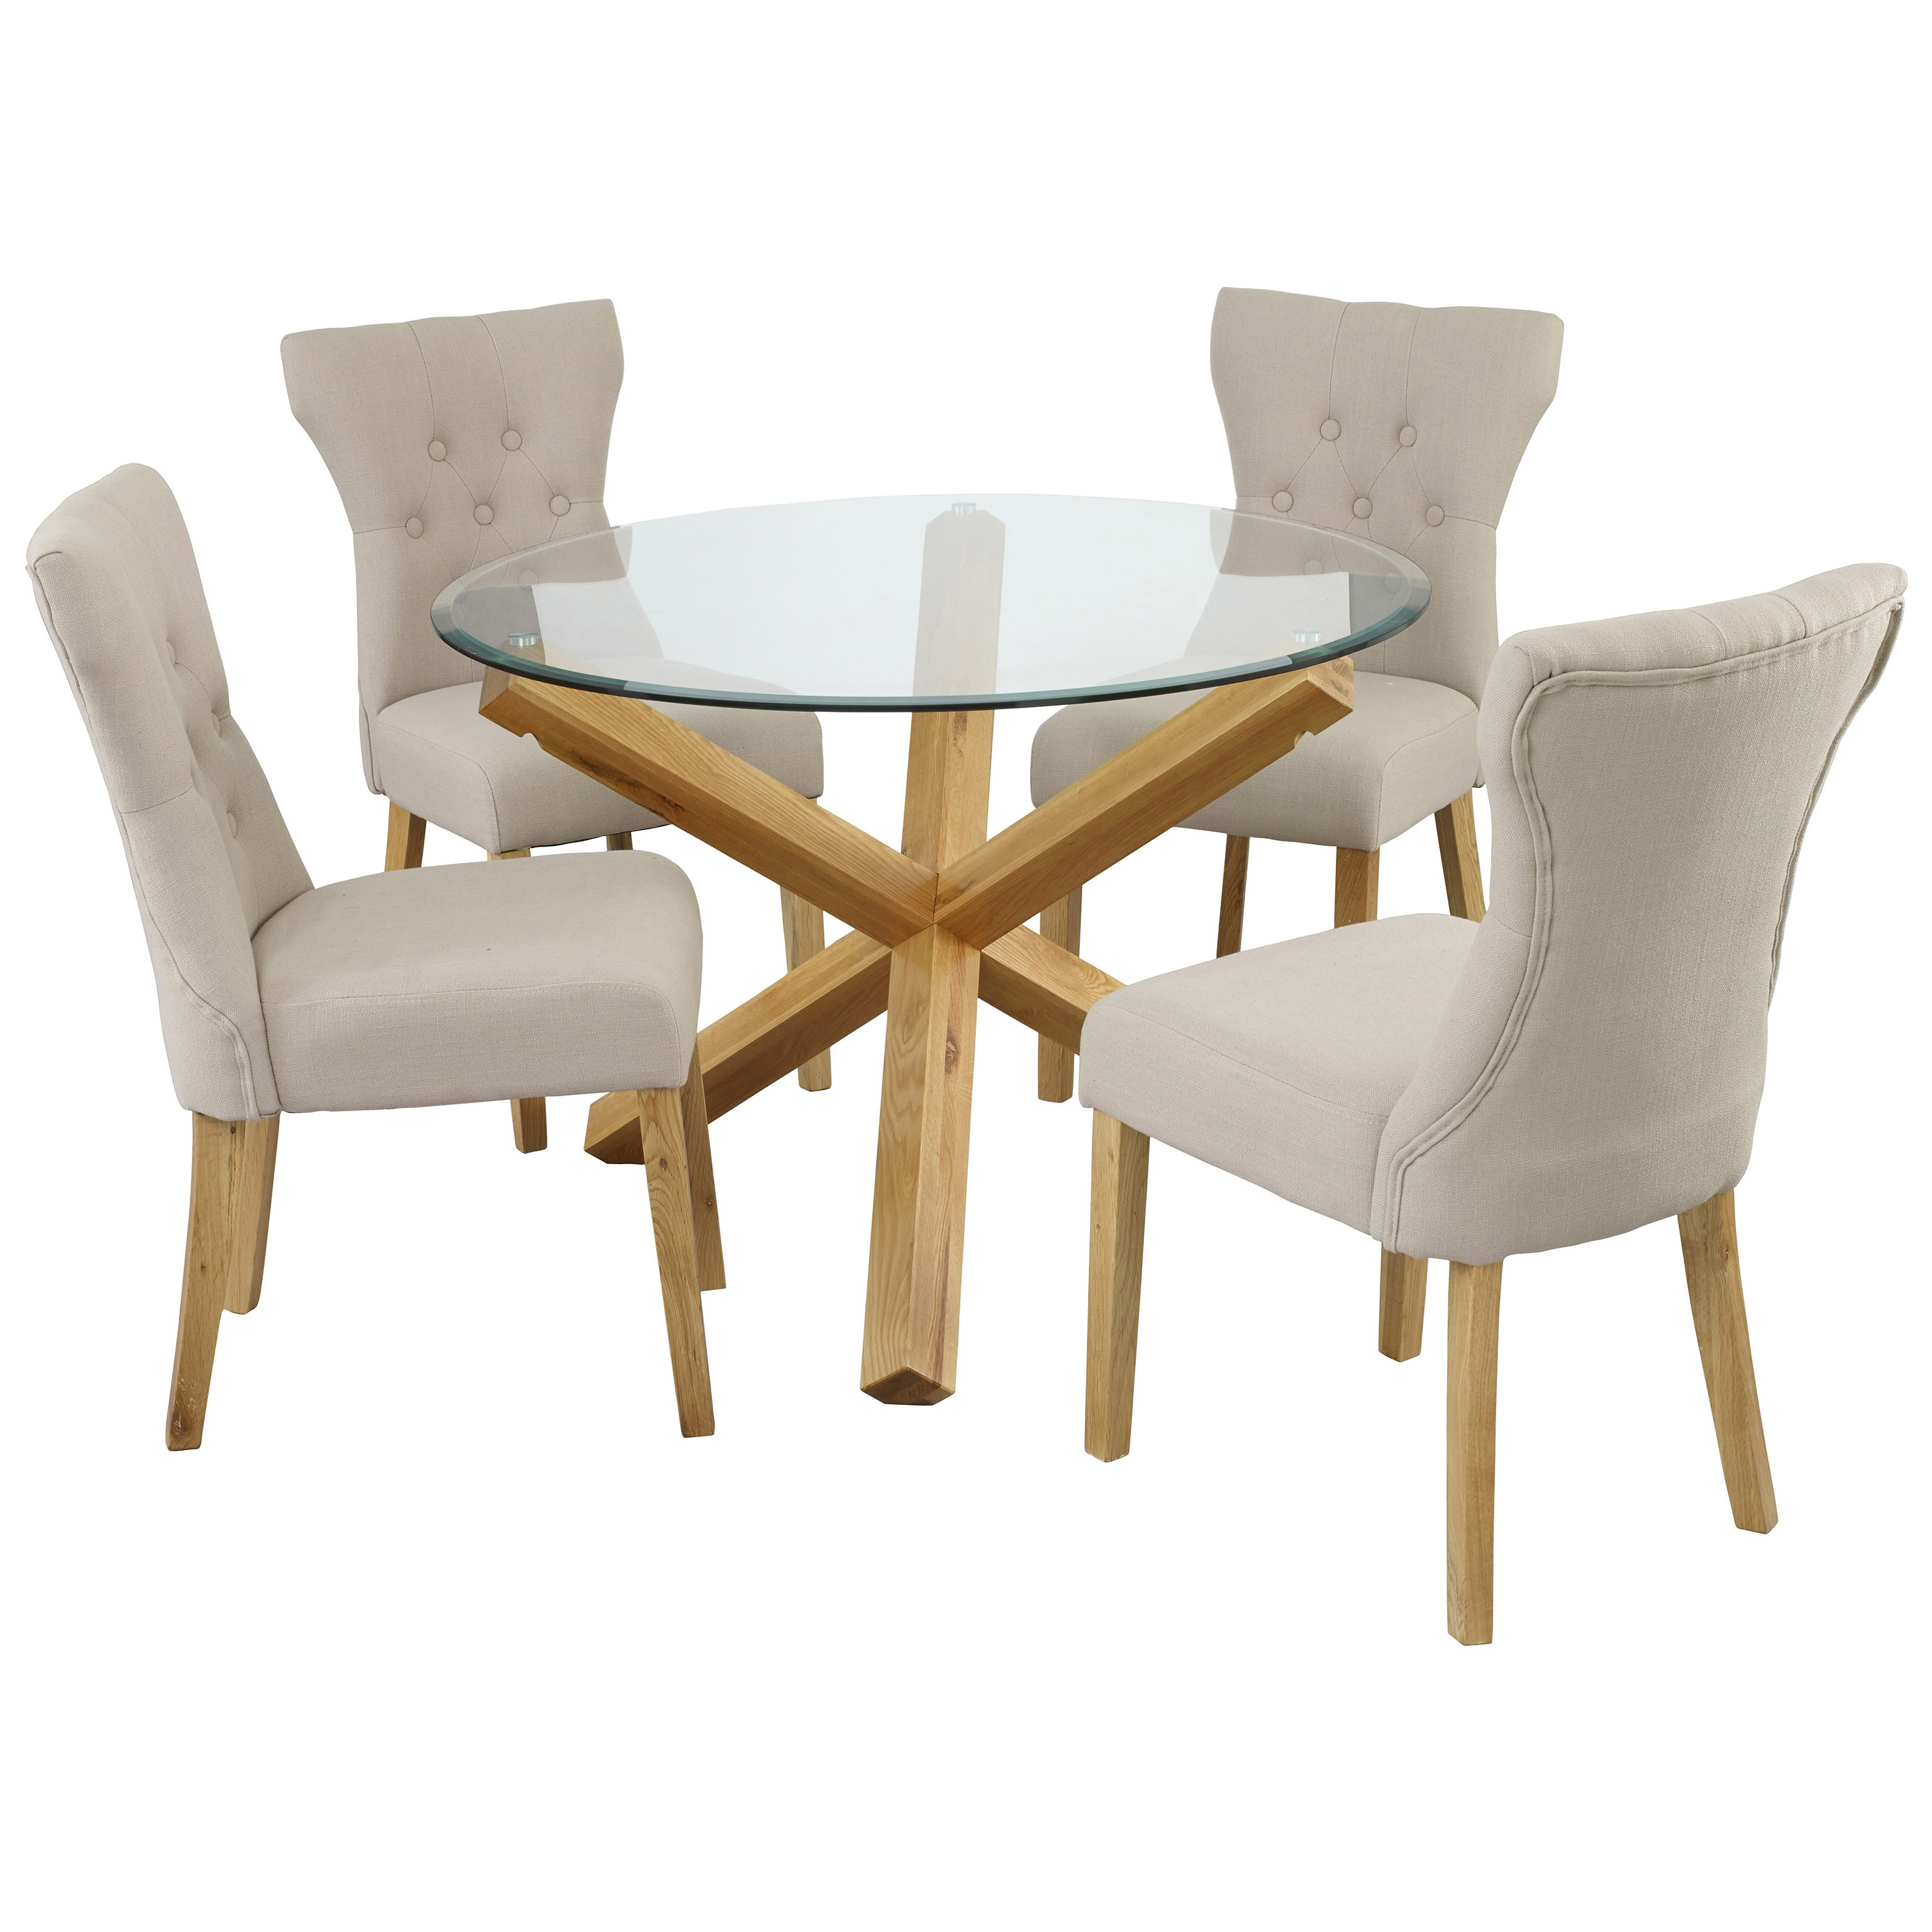 Oak & Glass Round Dining Table And Chair Set With 4 Fabric Seats With Best And Newest Glass Dining Tables With 6 Chairs (View 13 of 25)